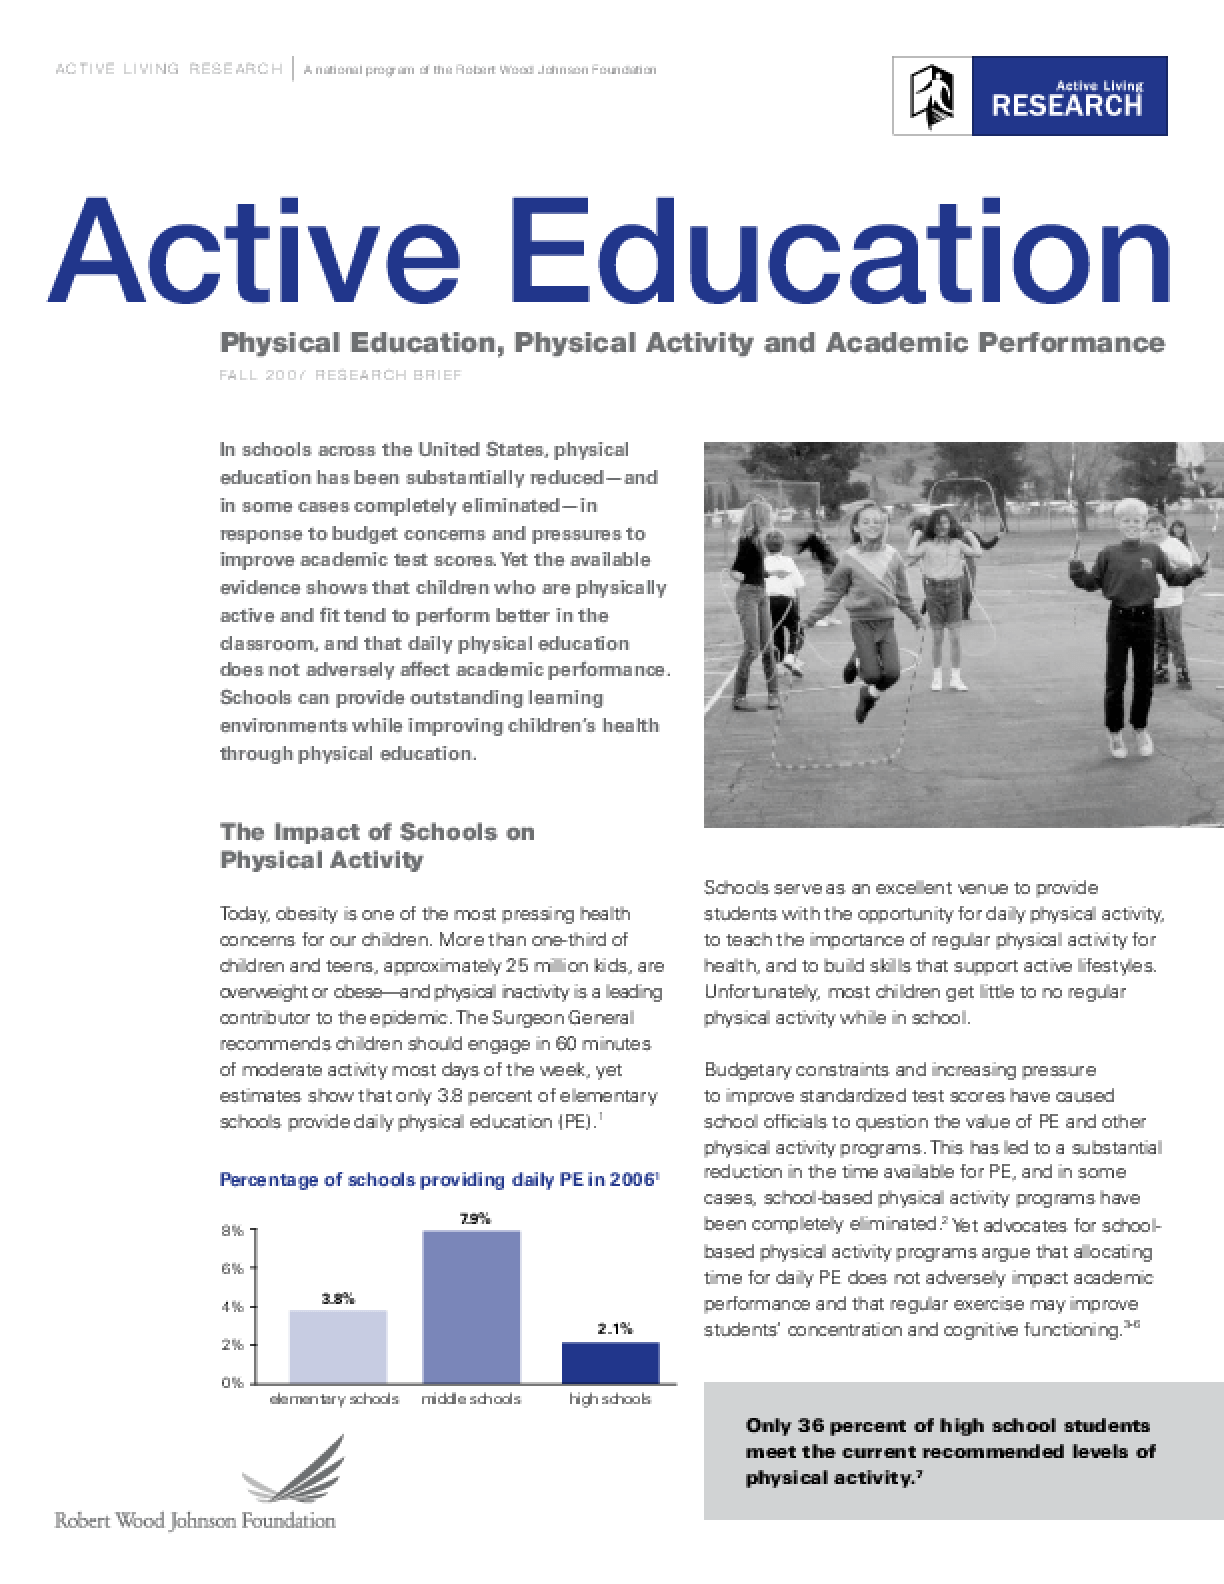 Active Education: Physical Education, Physical Activity and Academic Performance